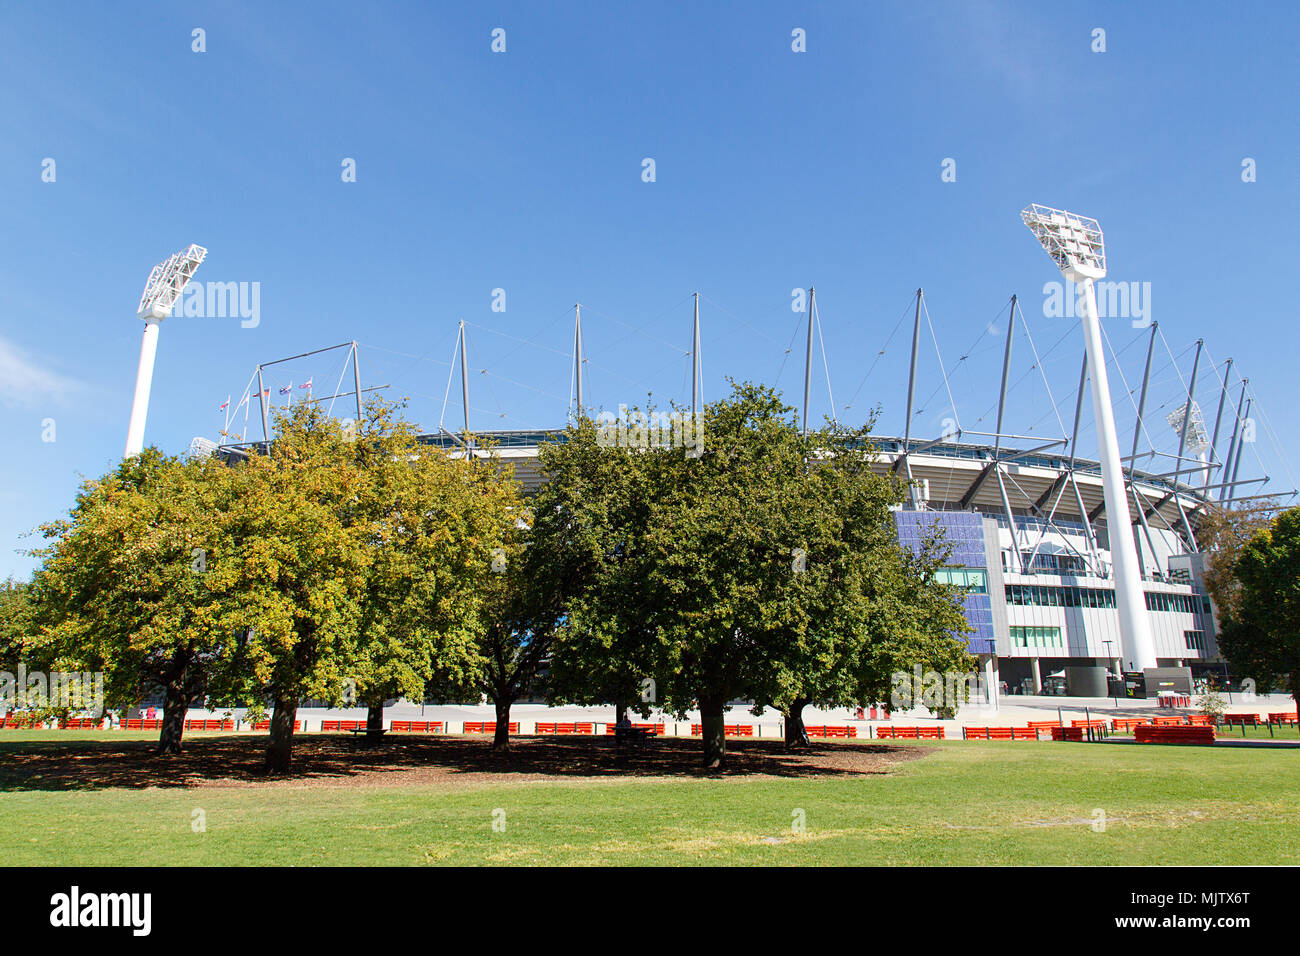 Melbourne, Australia: April 09, 2018: Melbourne Cricket Ground known as the MCG has a seating capacity of over 100,000  is located in Yarra Park. - Stock Image